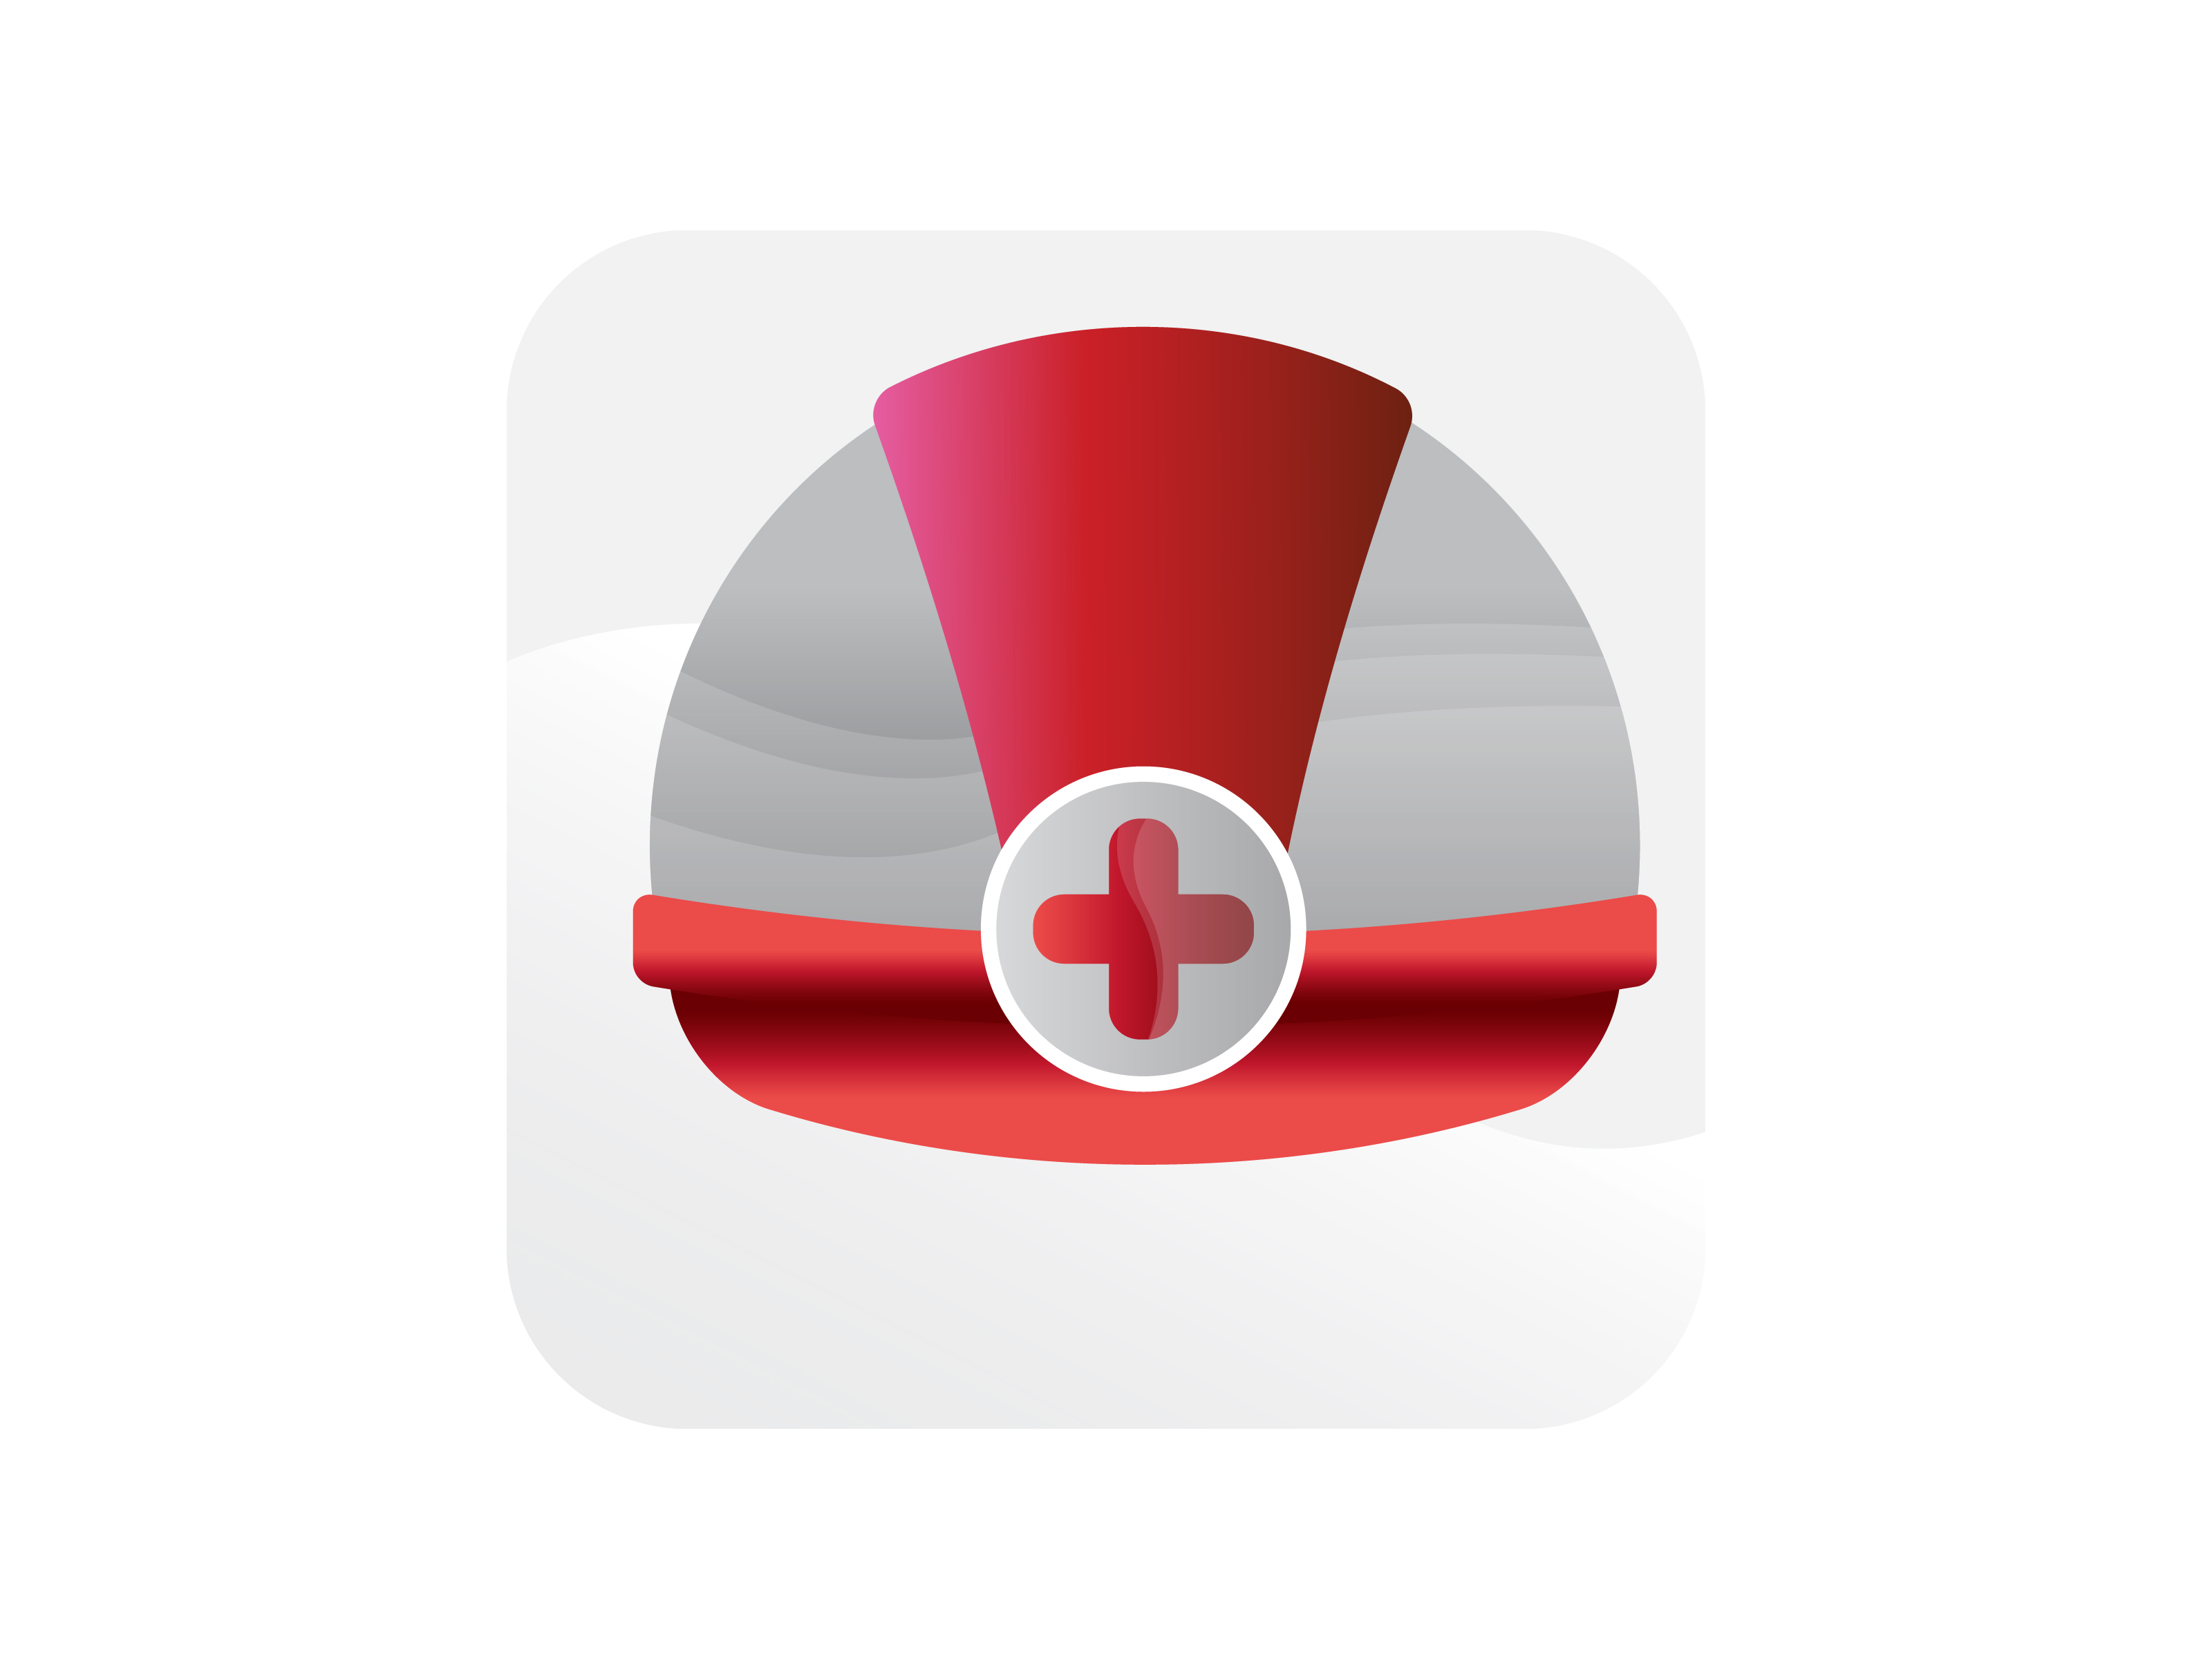 Download Free Medical Helmet Icon Graphic By Samagata Creative Fabrica for Cricut Explore, Silhouette and other cutting machines.